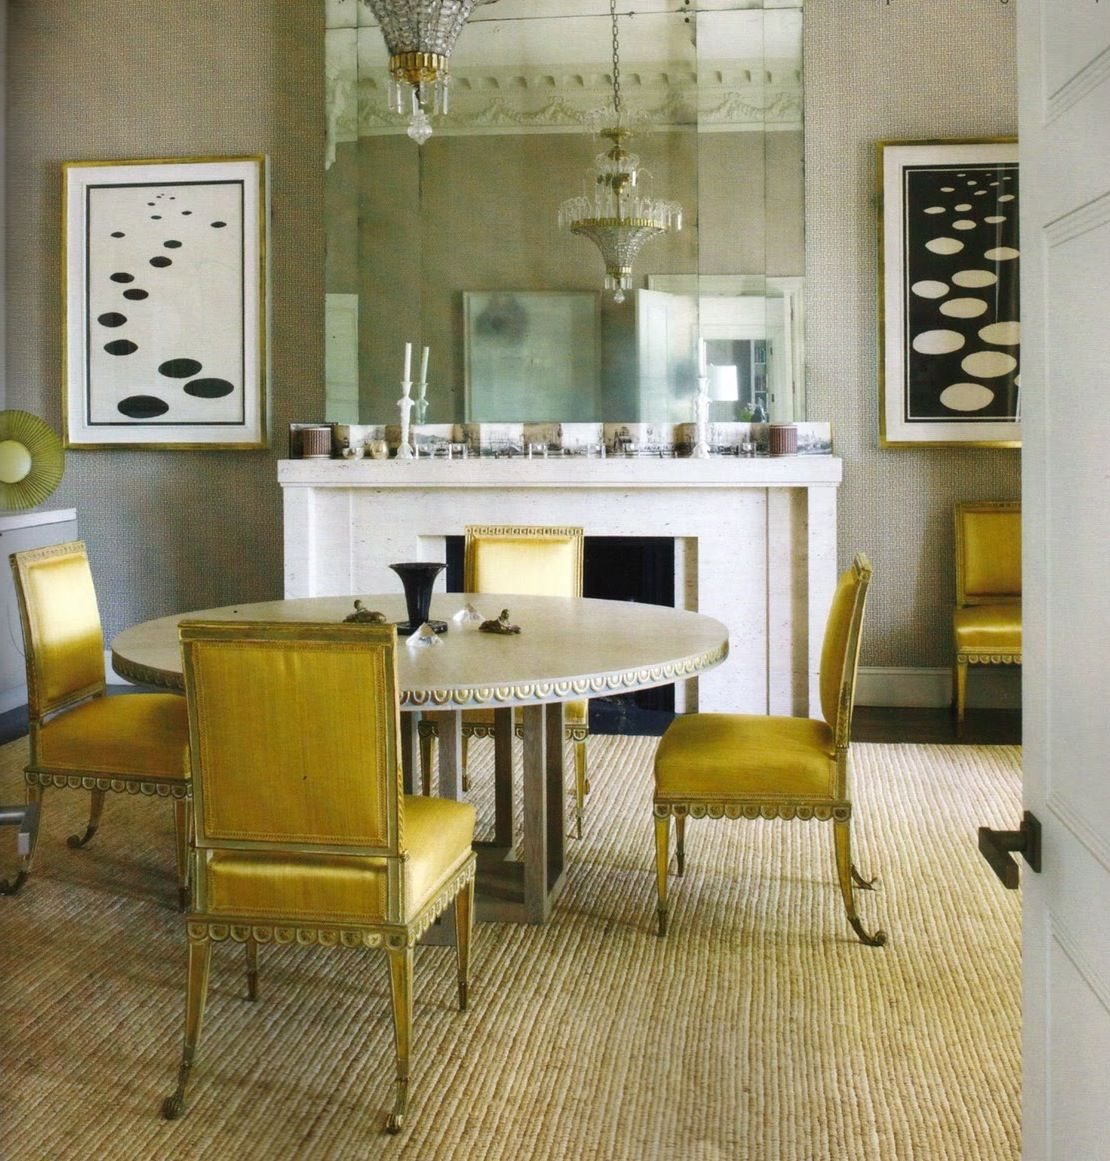 Modern and elegant dining areau great detail in the chairs and table